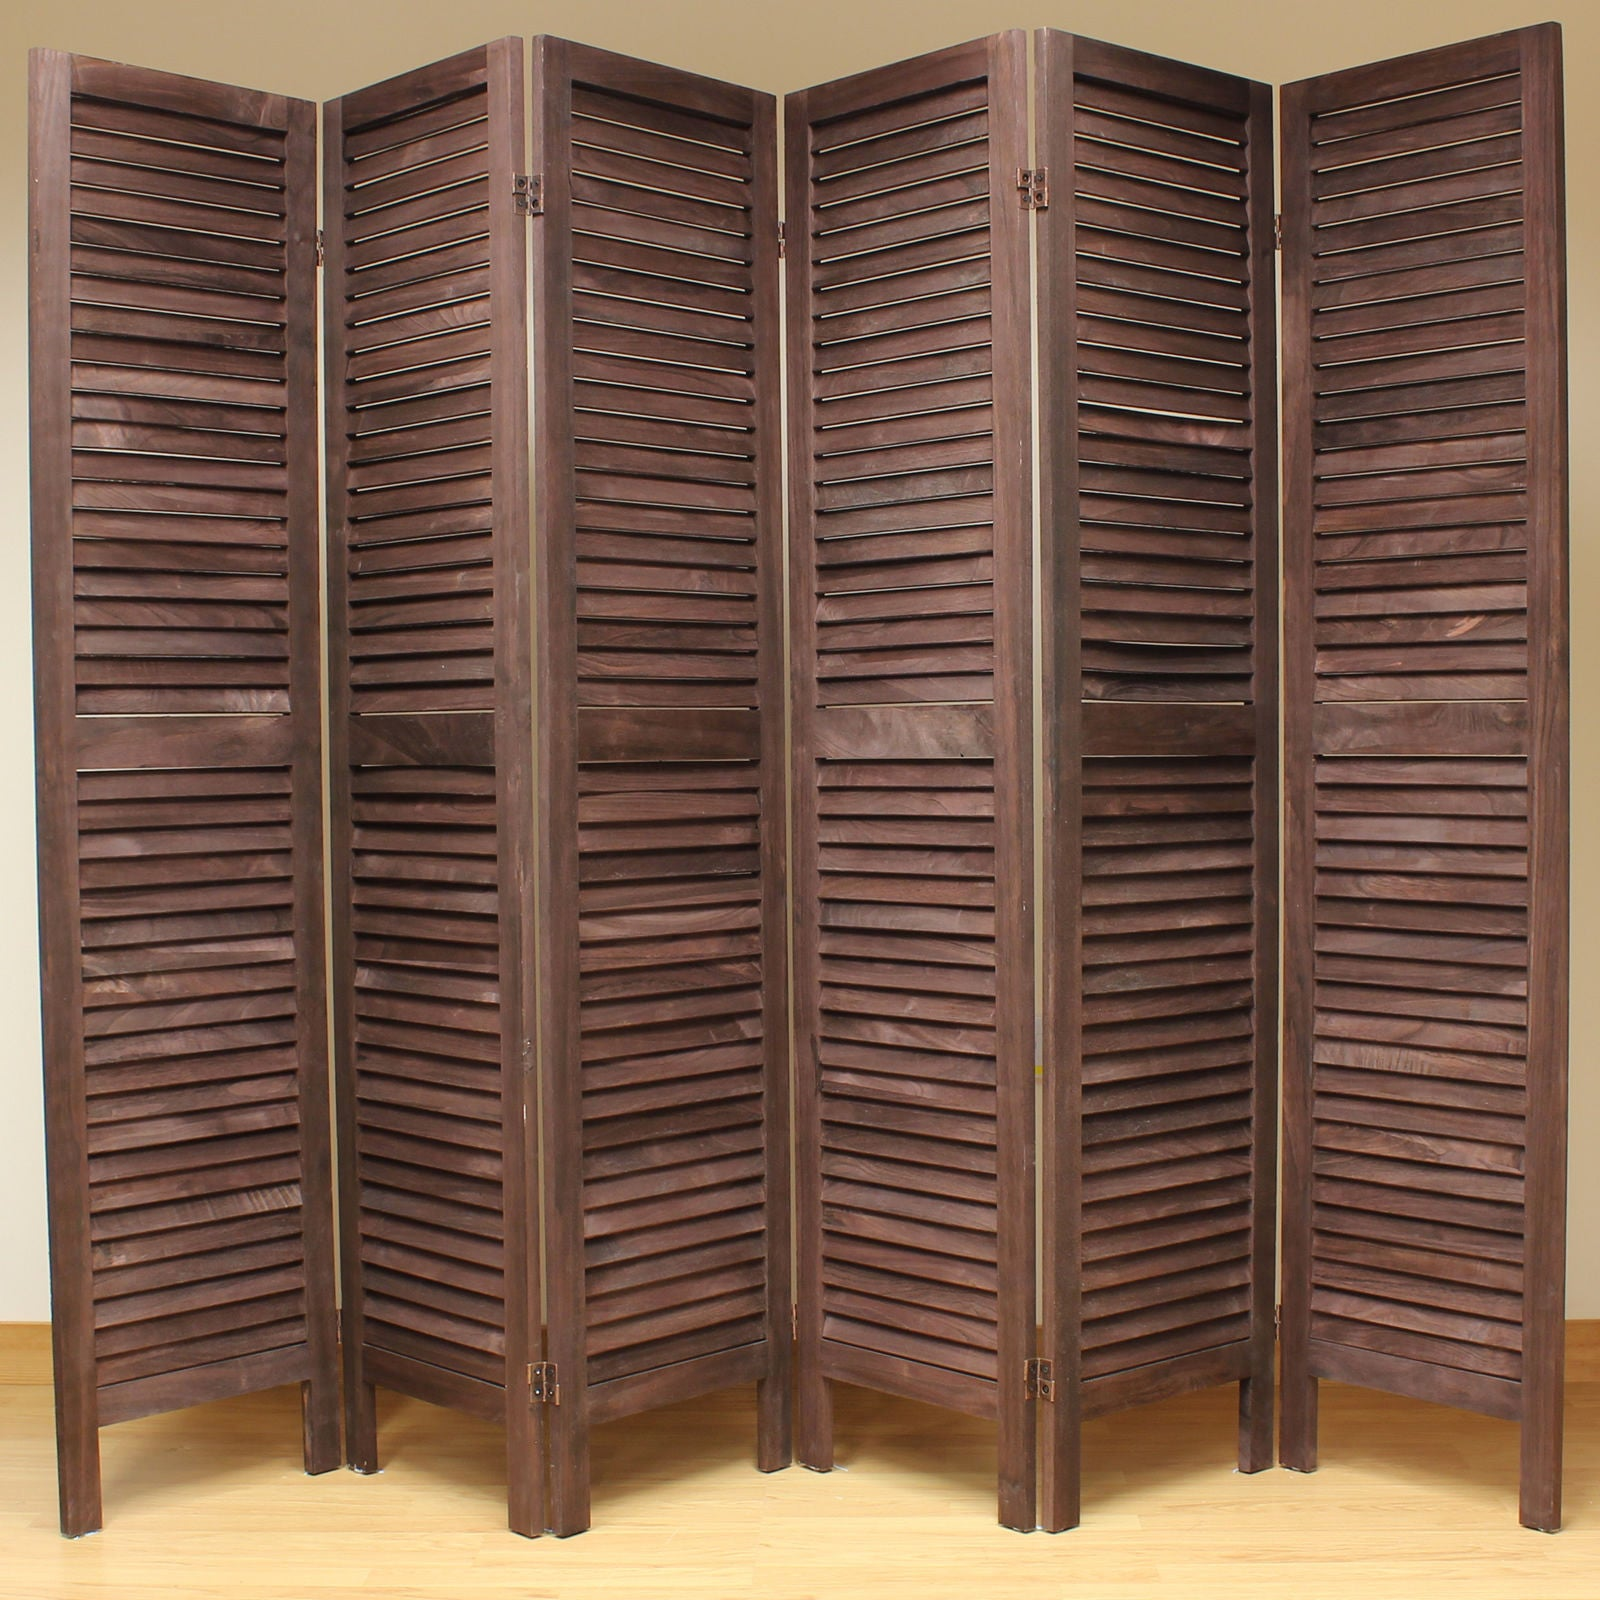 Wooden Slat Room Divider Screen 6 Panel Brown Room